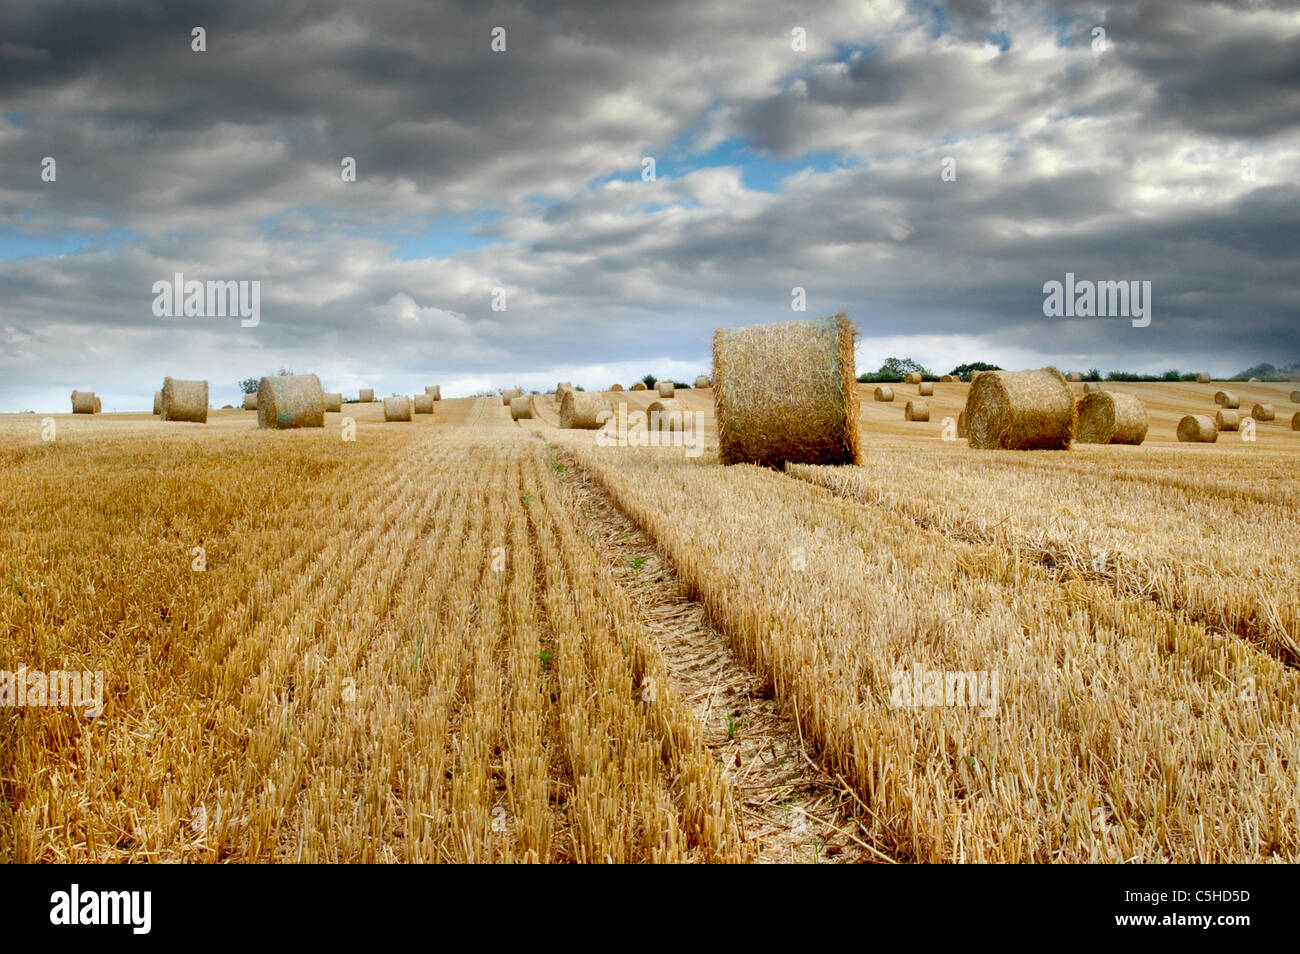 A bale of hay after the crop has been harvested, with a dramatic blue and grey sky. - Stock Image